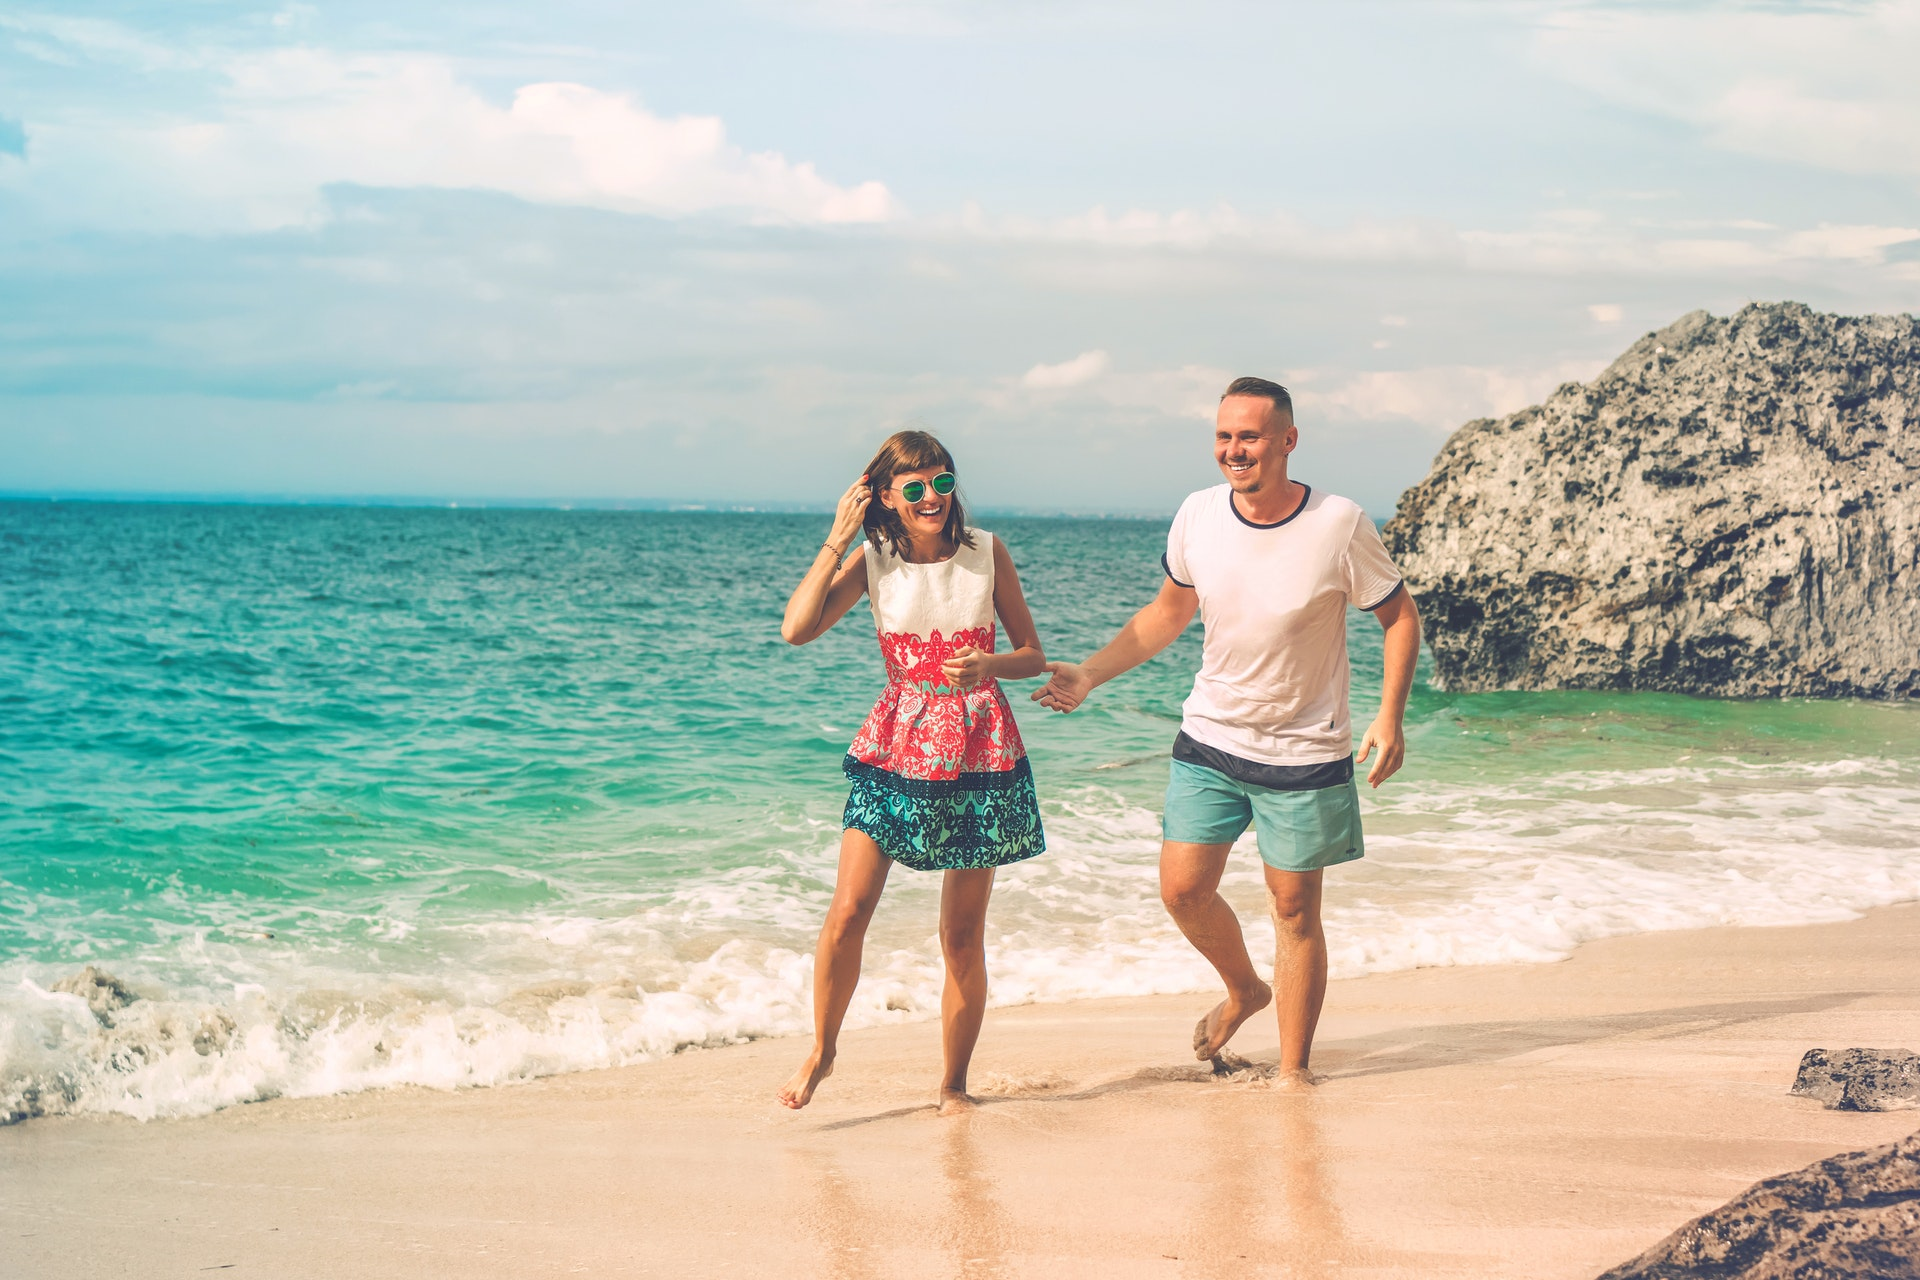 Traveling Tips for Married Couples: 8 Ways to Make the Most Out of Your Romantic Getaway